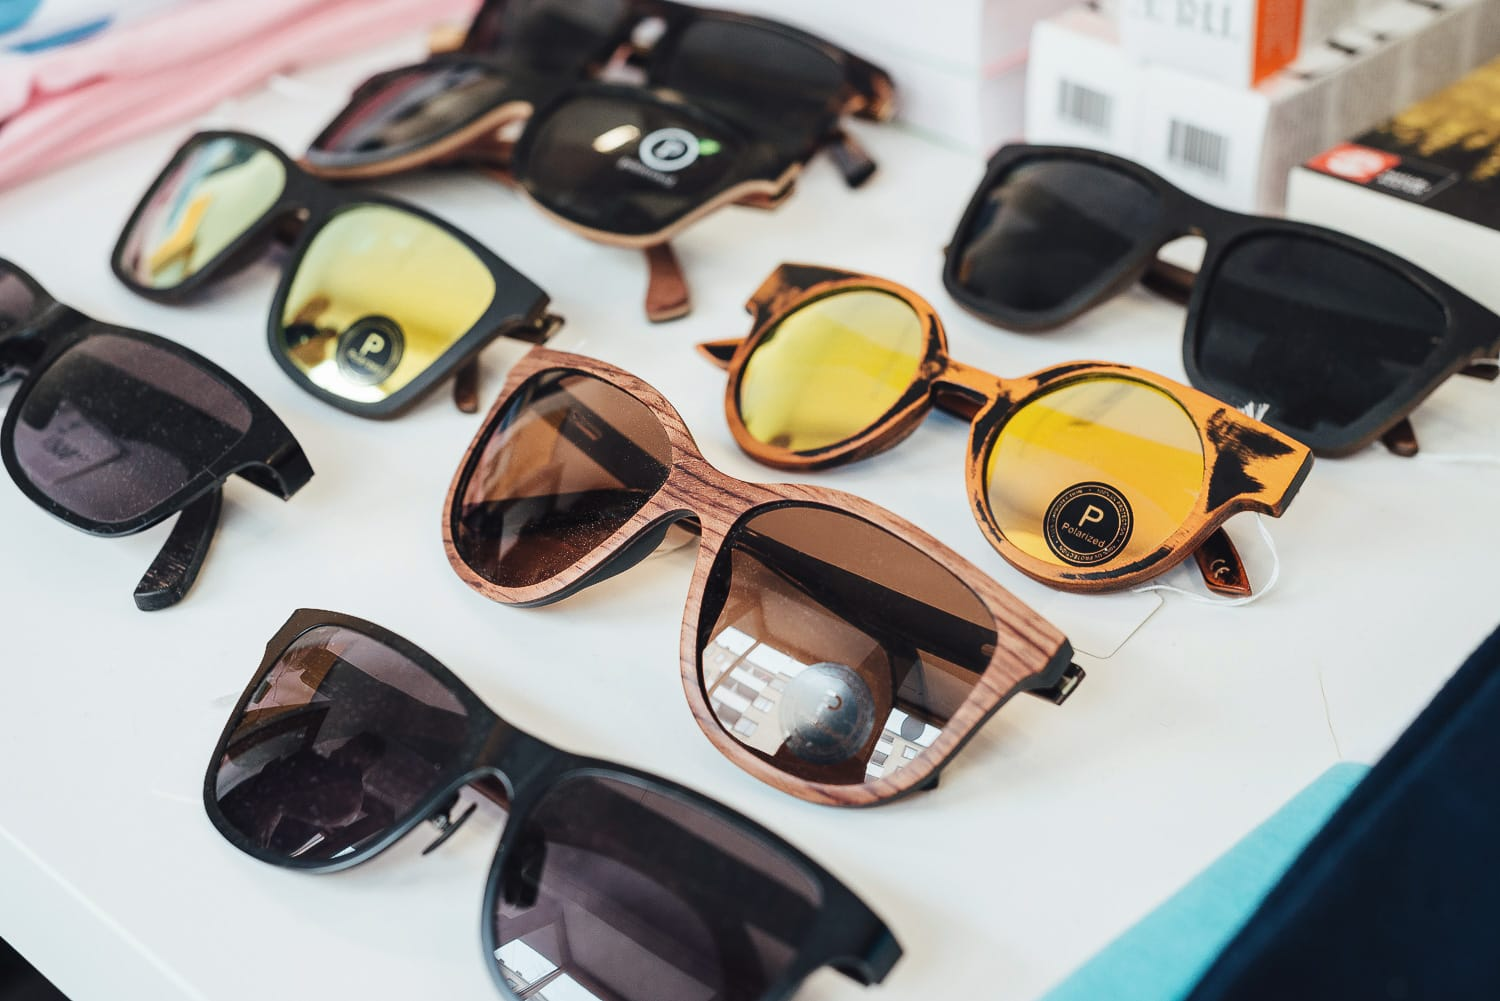 Sunglasses on display at Ecosphere